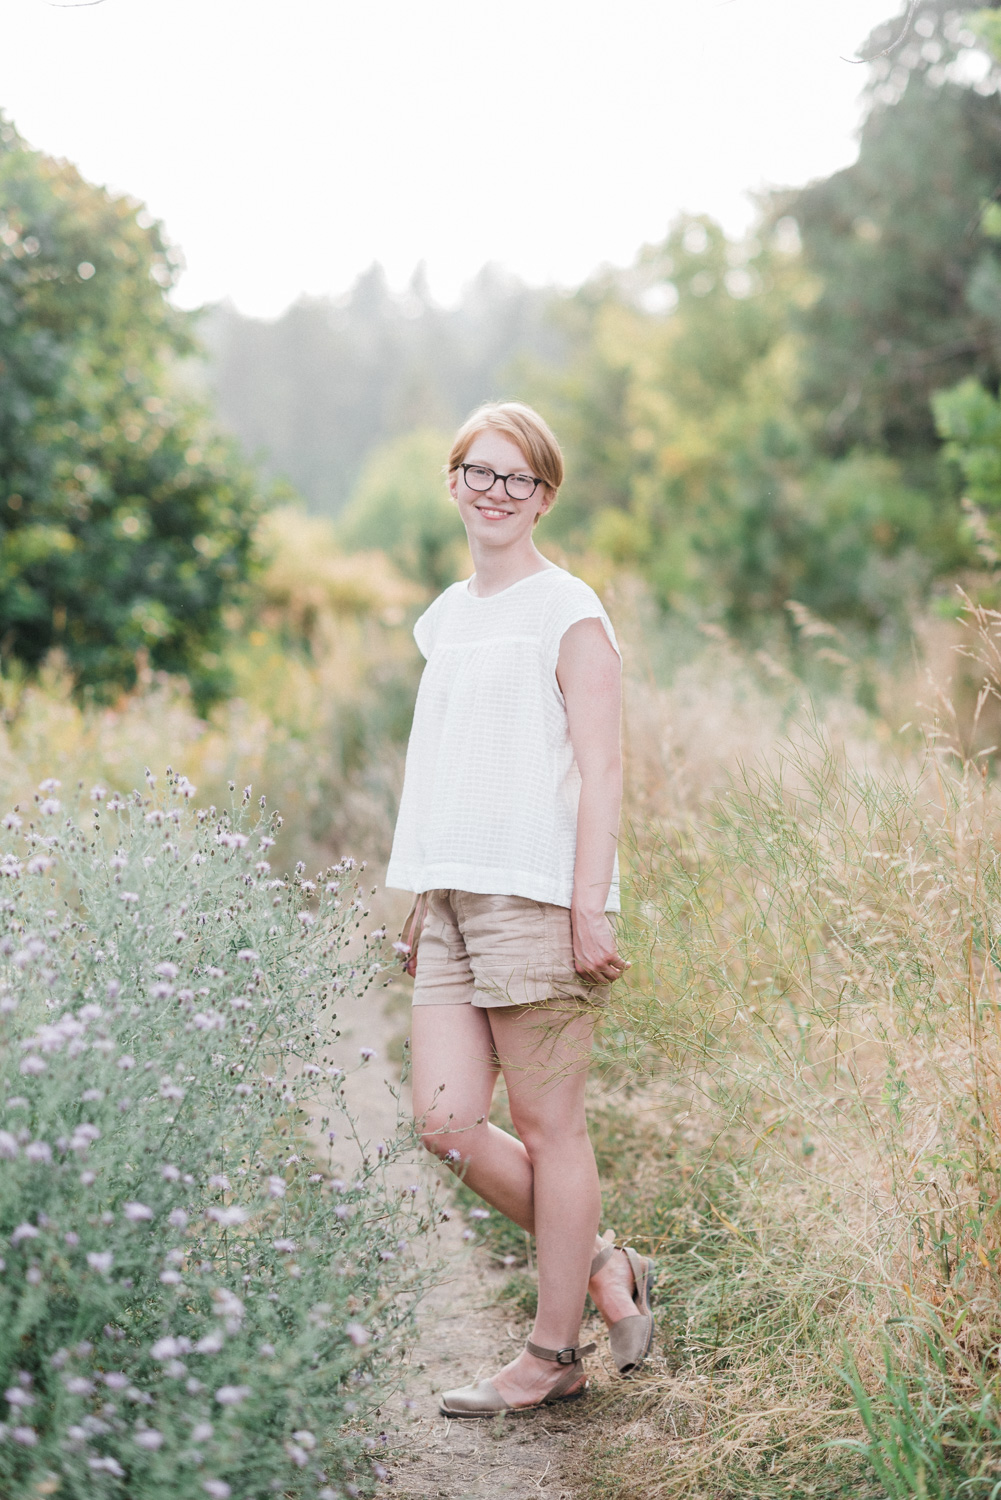 mt_spokane_senior_session_hannah_dightman-16.jpg